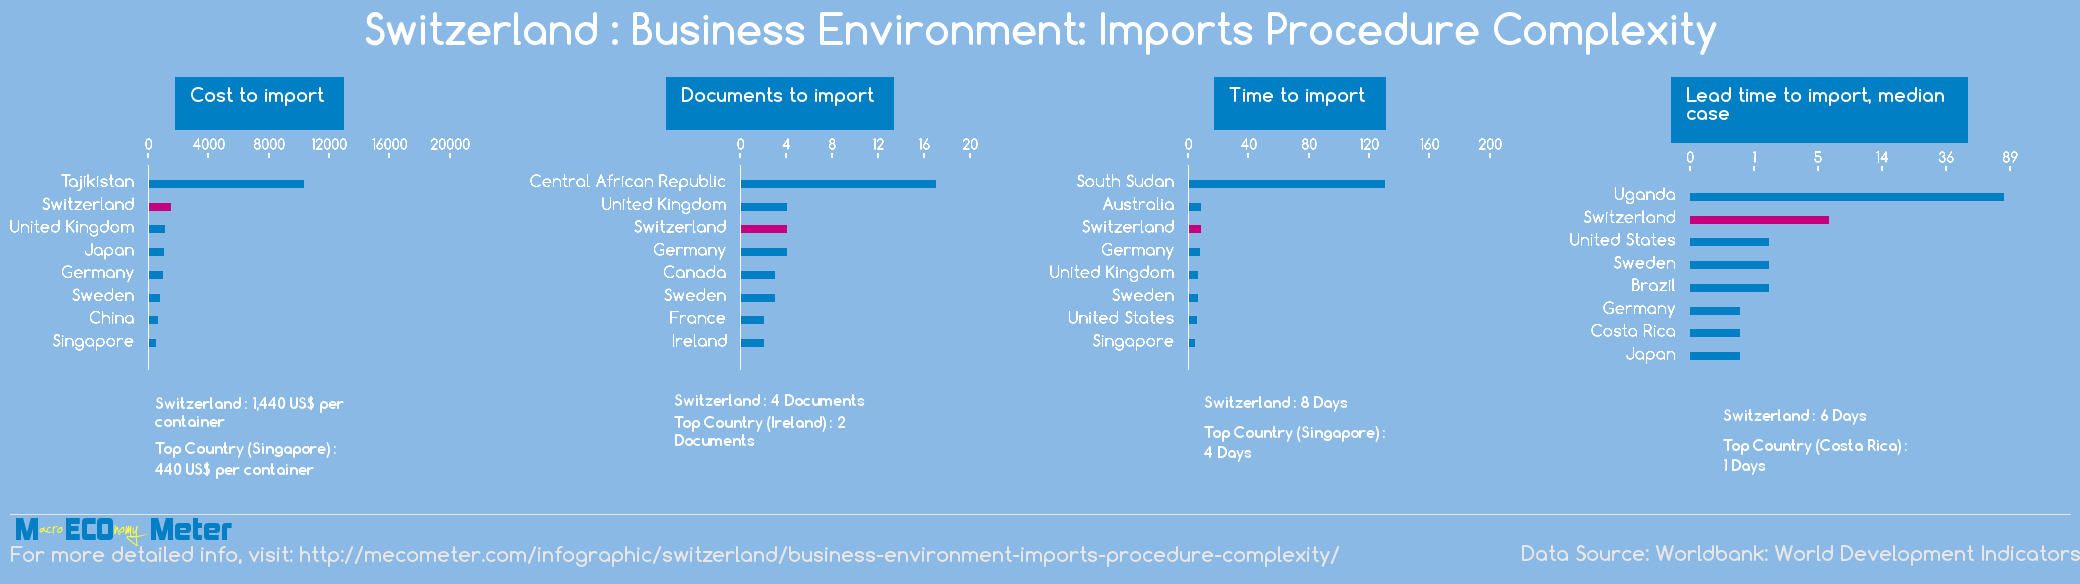 Switzerland : Business Environment: Imports Procedure Complexity